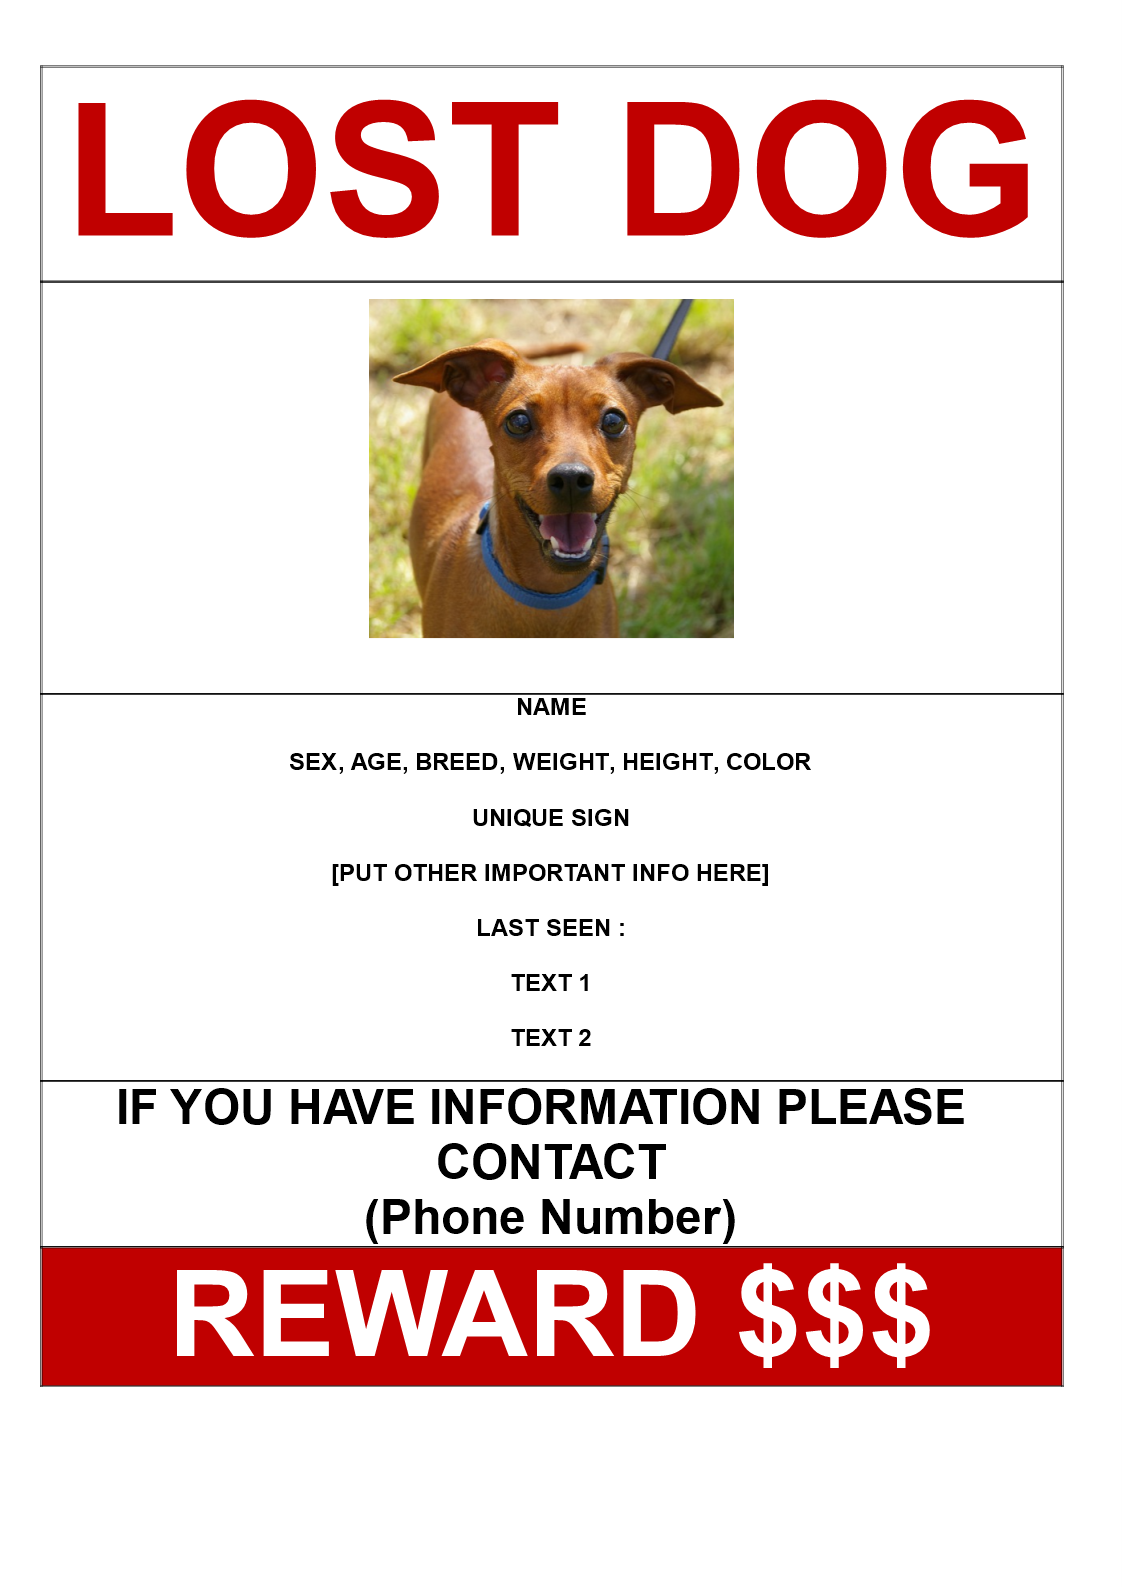 Lost Dog Poster Template - Unitedijawstates.com